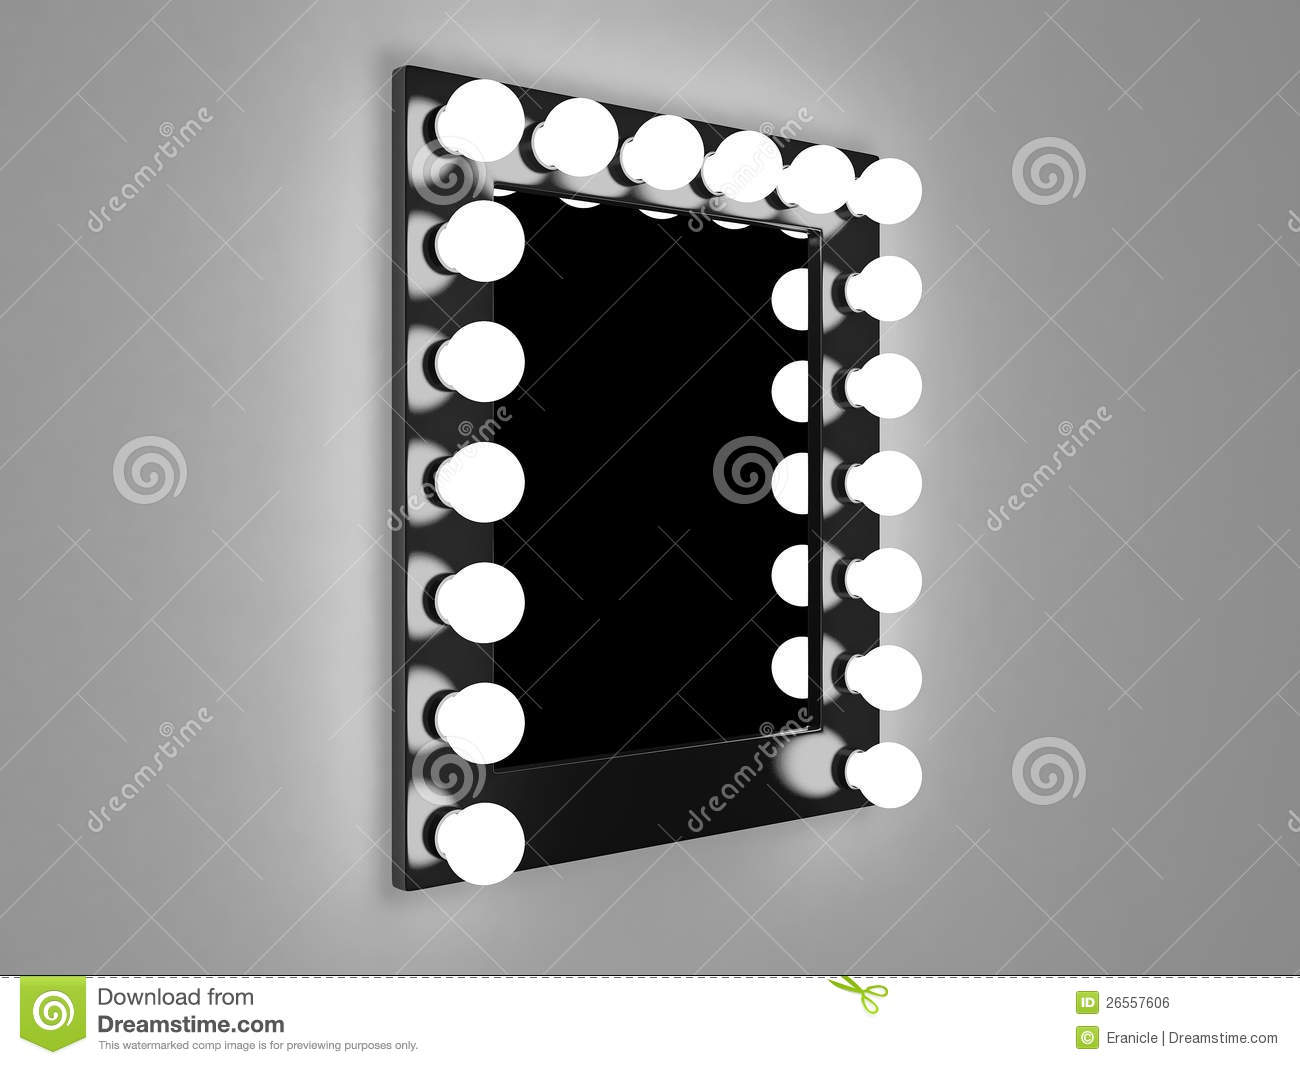 Makeup mirror stock illustration. Image of wall, illuminated - 26557606